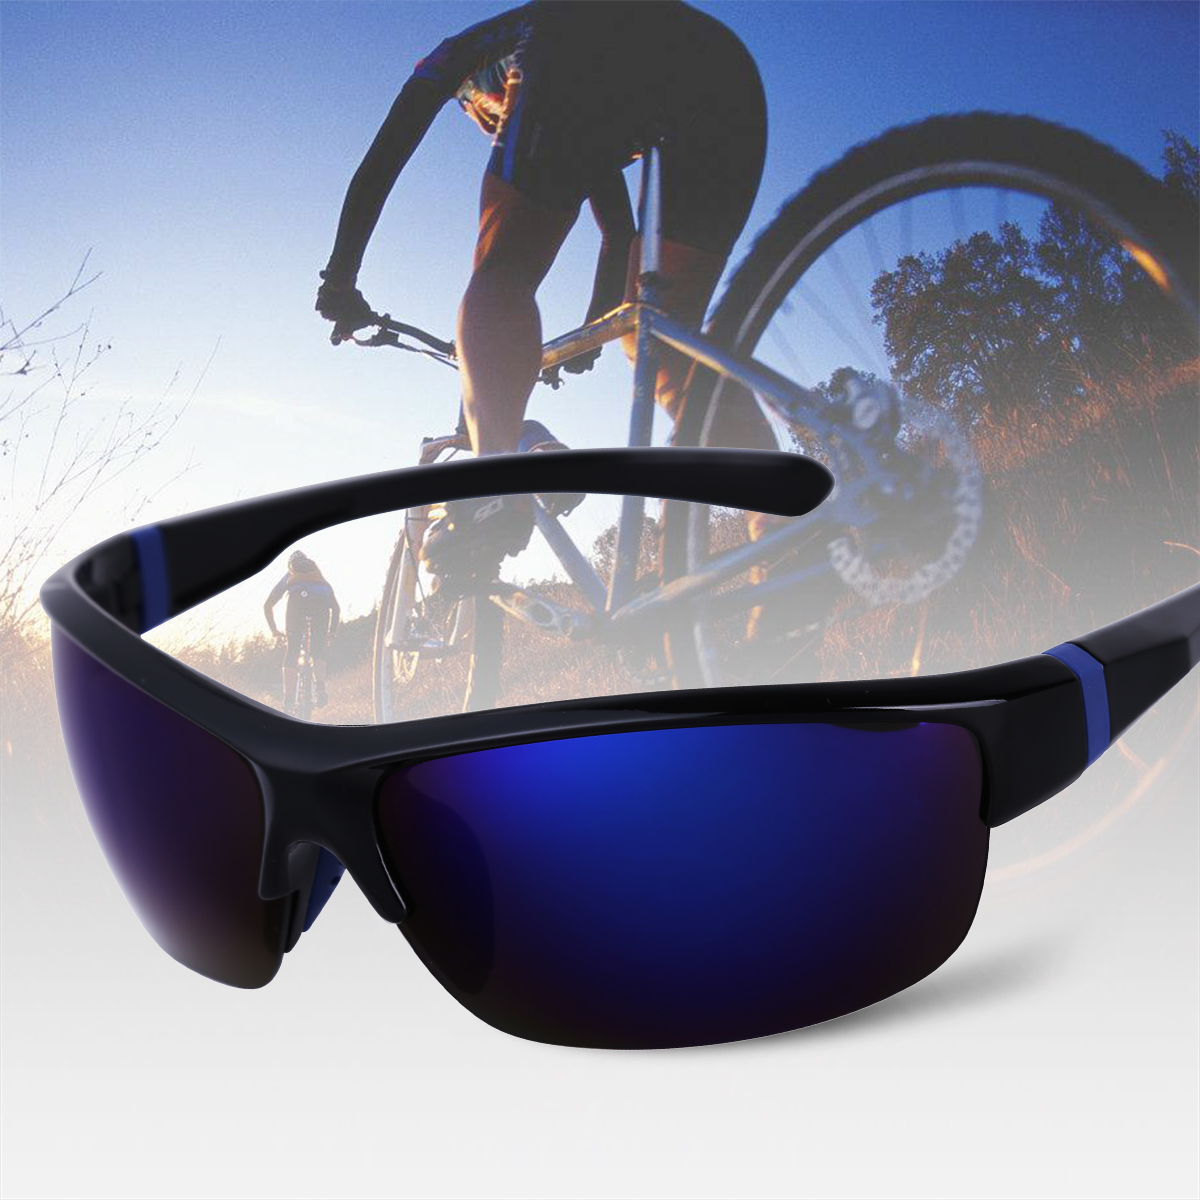 Fashion Pro Polarized Cycling Glasses Sports Outdoor Driving Hiking Glasses Hot